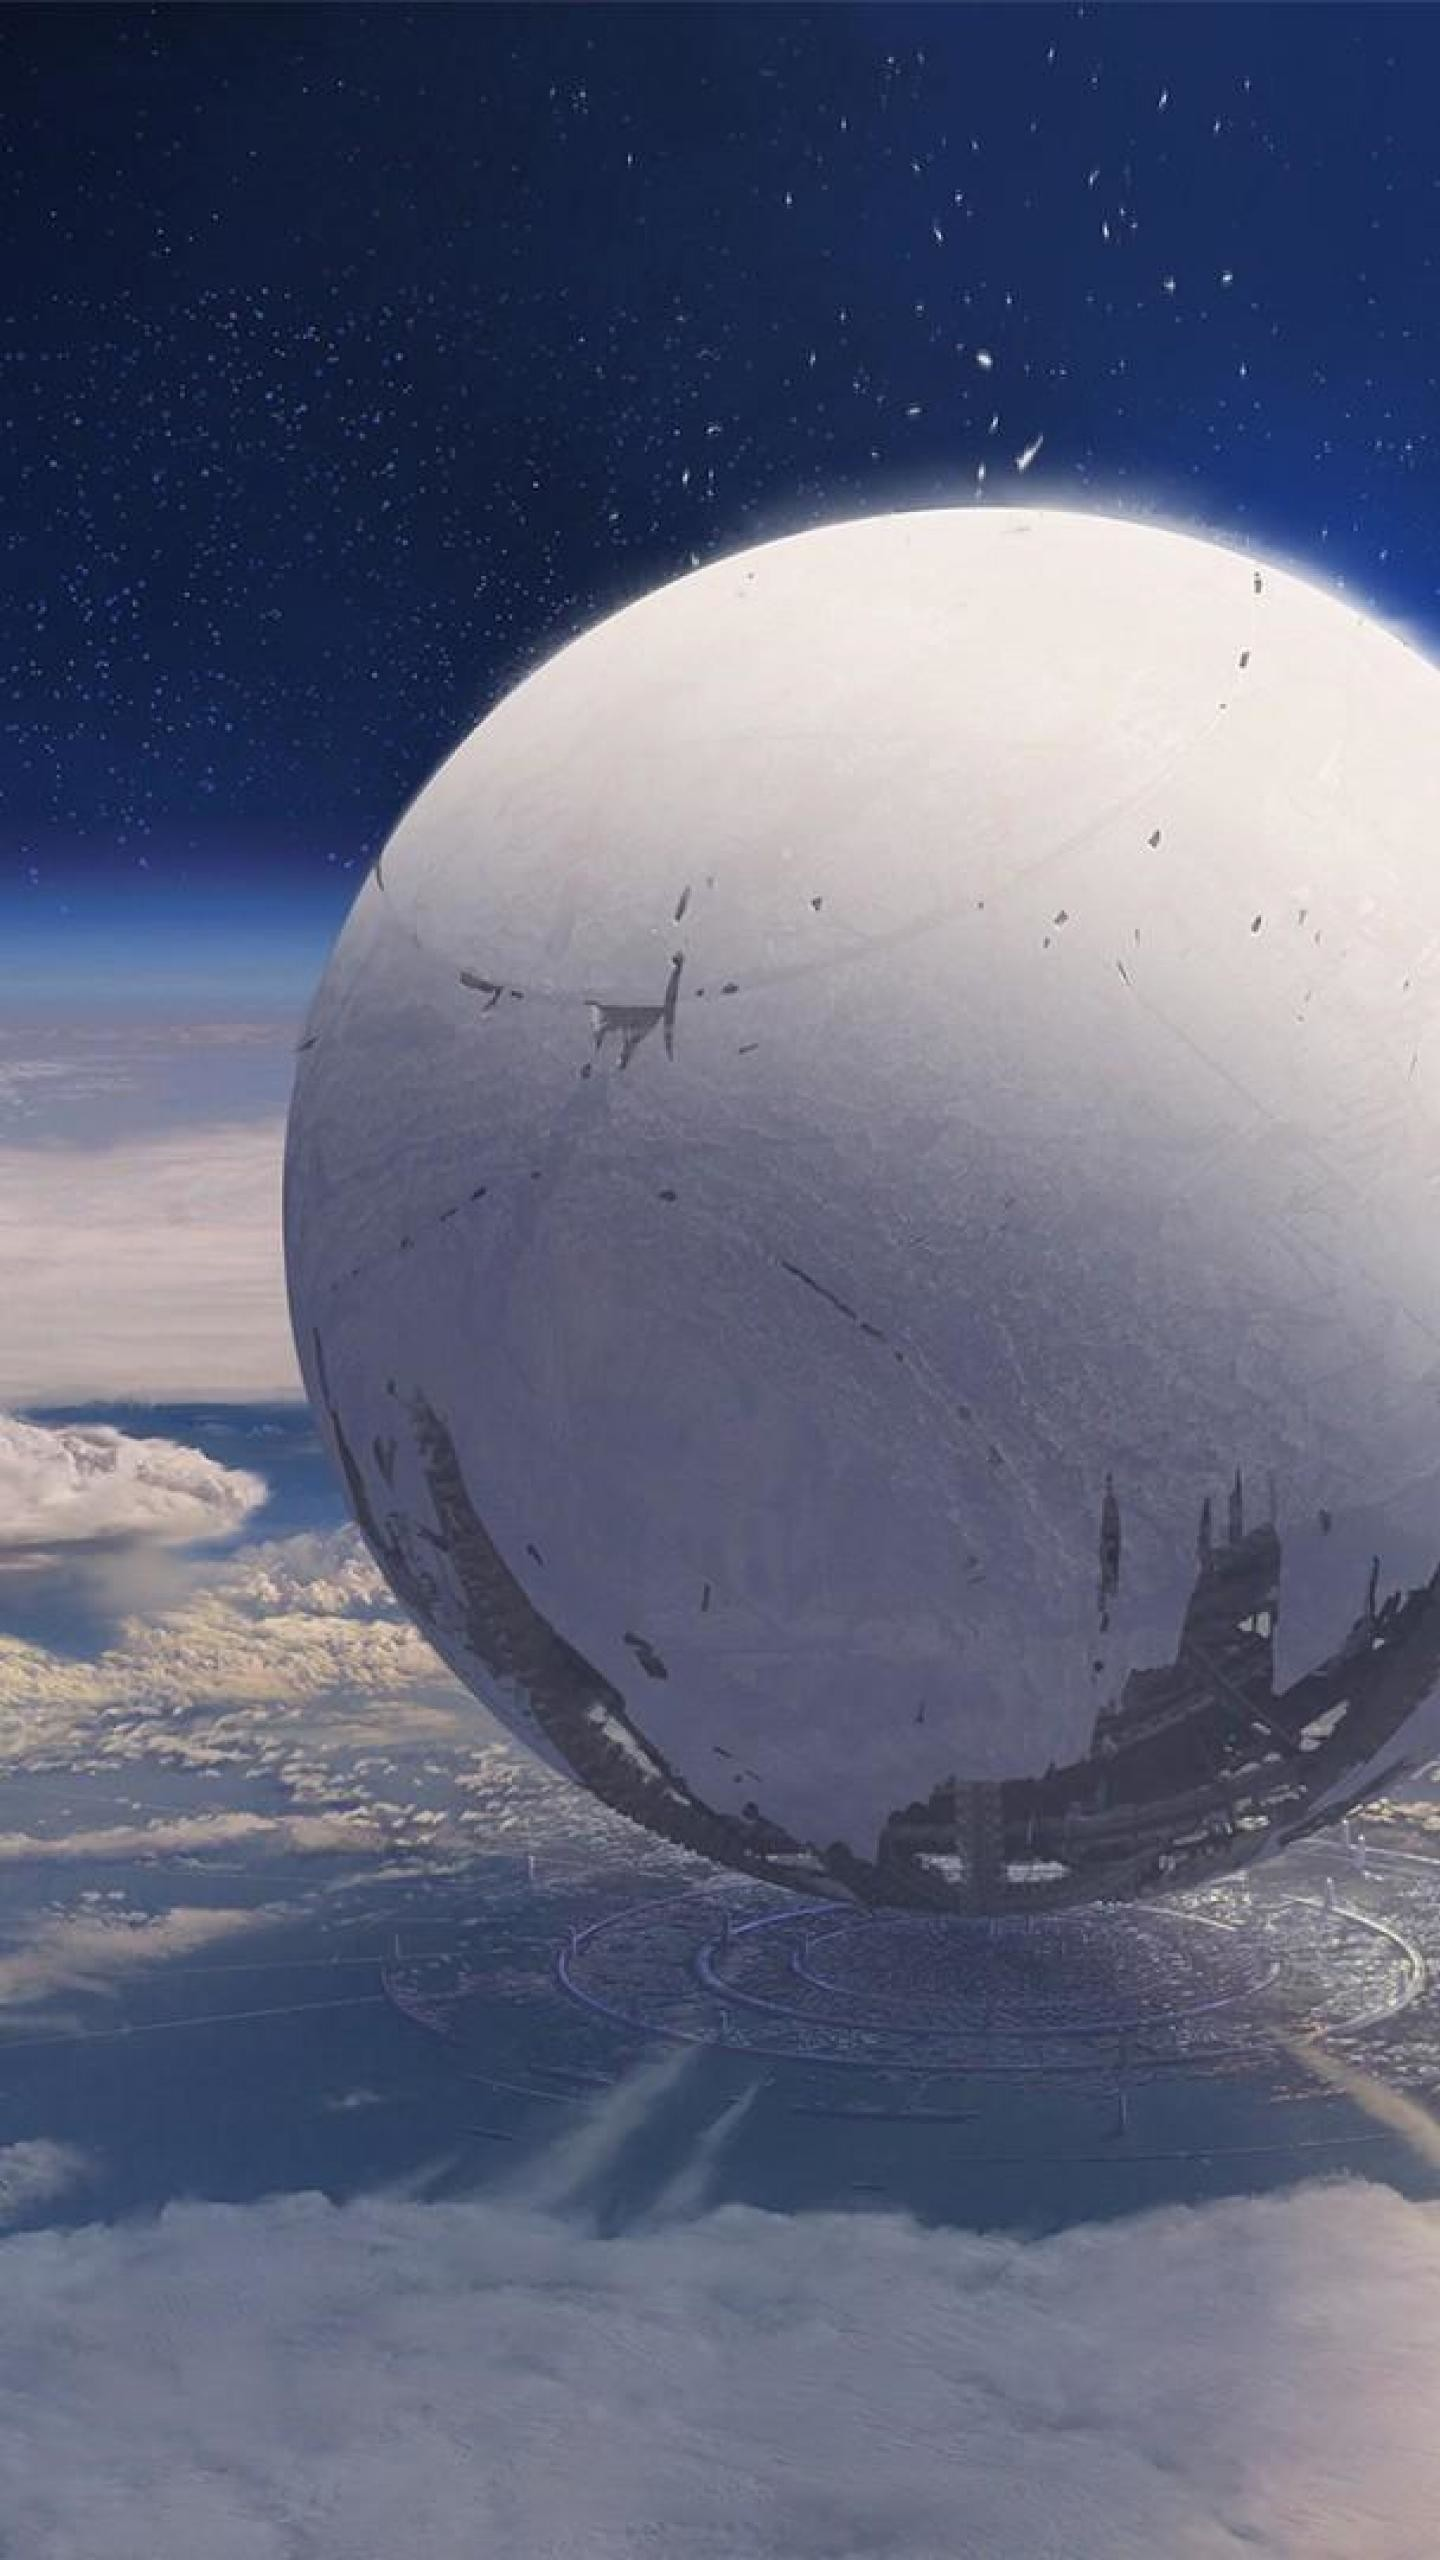 1440x2560 Destiny HD Wallpapers, Desktop Backgrounds, Mobile Wallpapers .